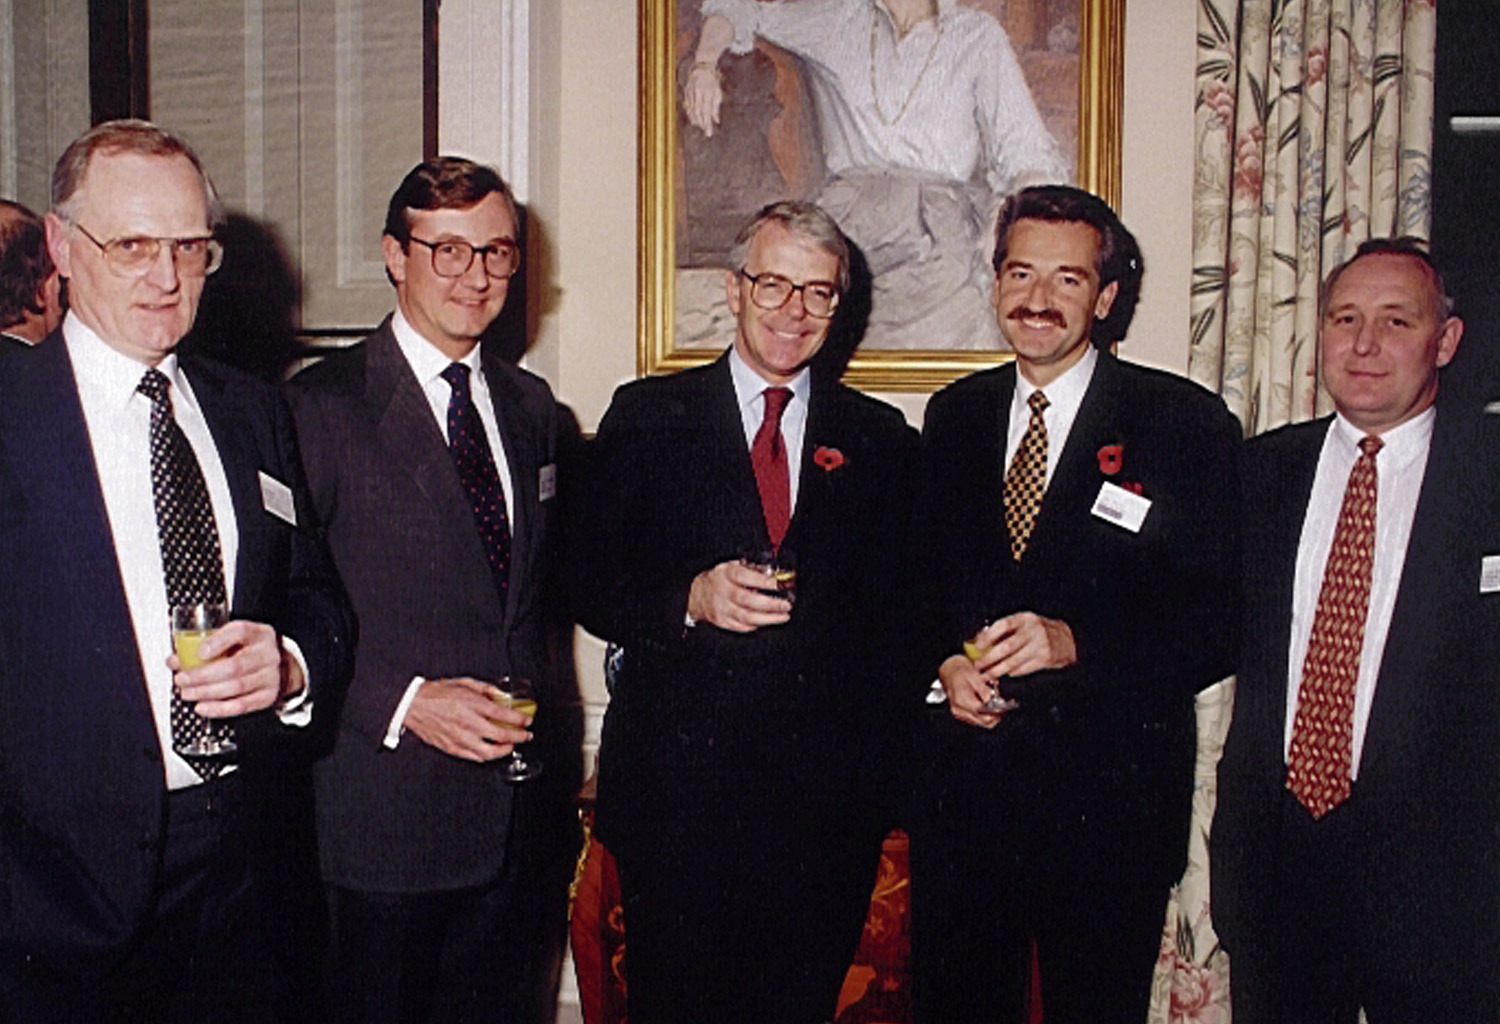 Chris Kelly of Keltruck and the late Alan R. Murrall of East Midland Commercials with Prime Minister John Major at 10 Downing Street.